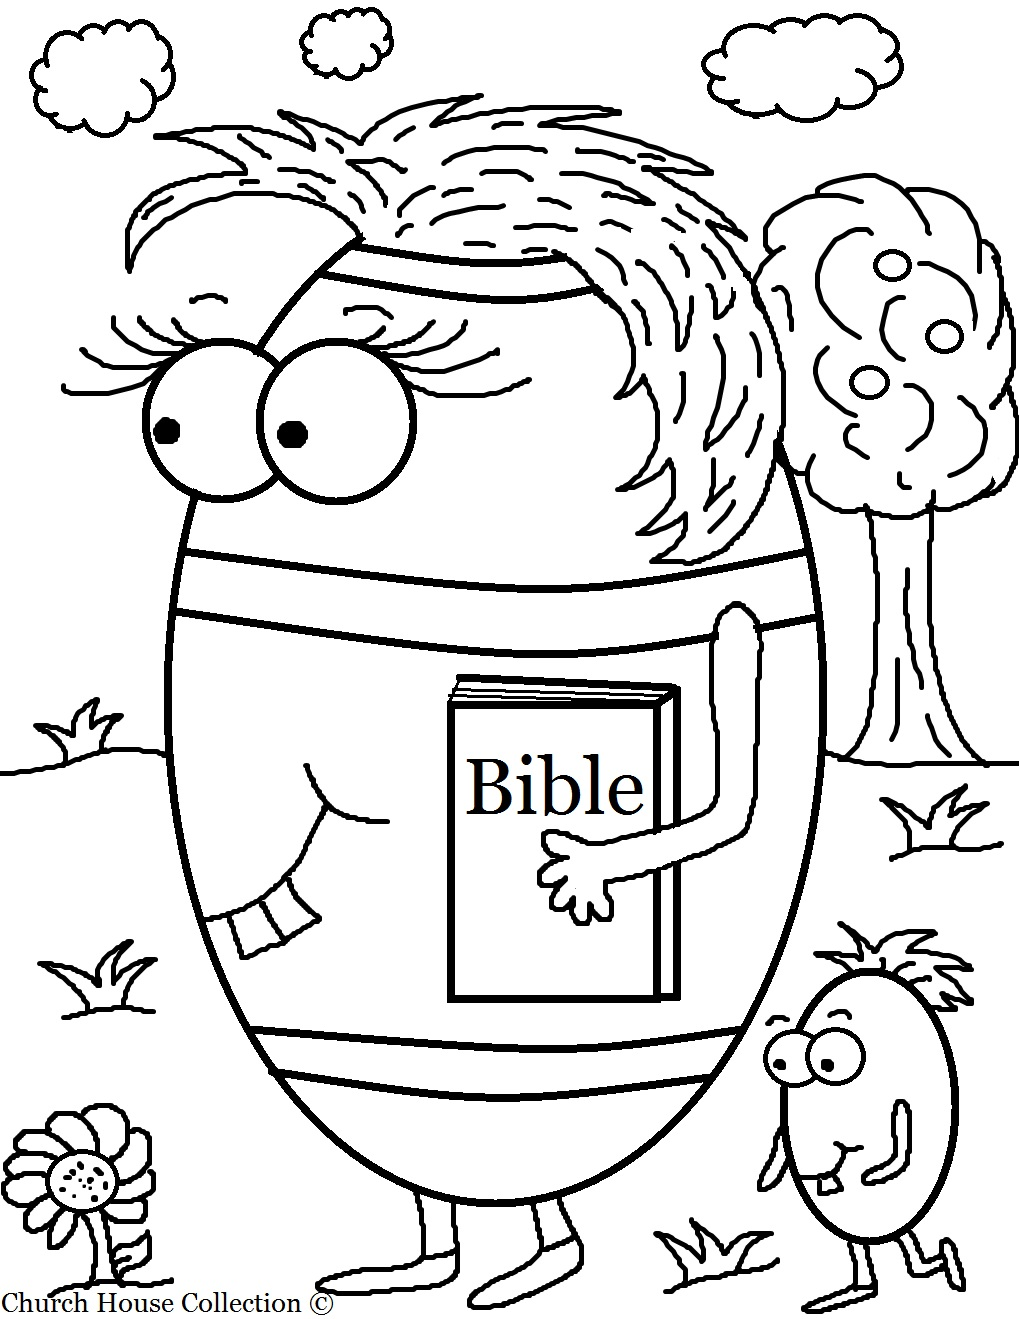 coloring pages for kindergarten free - Free Printable Kindergarten Math Worksheets Kidzone